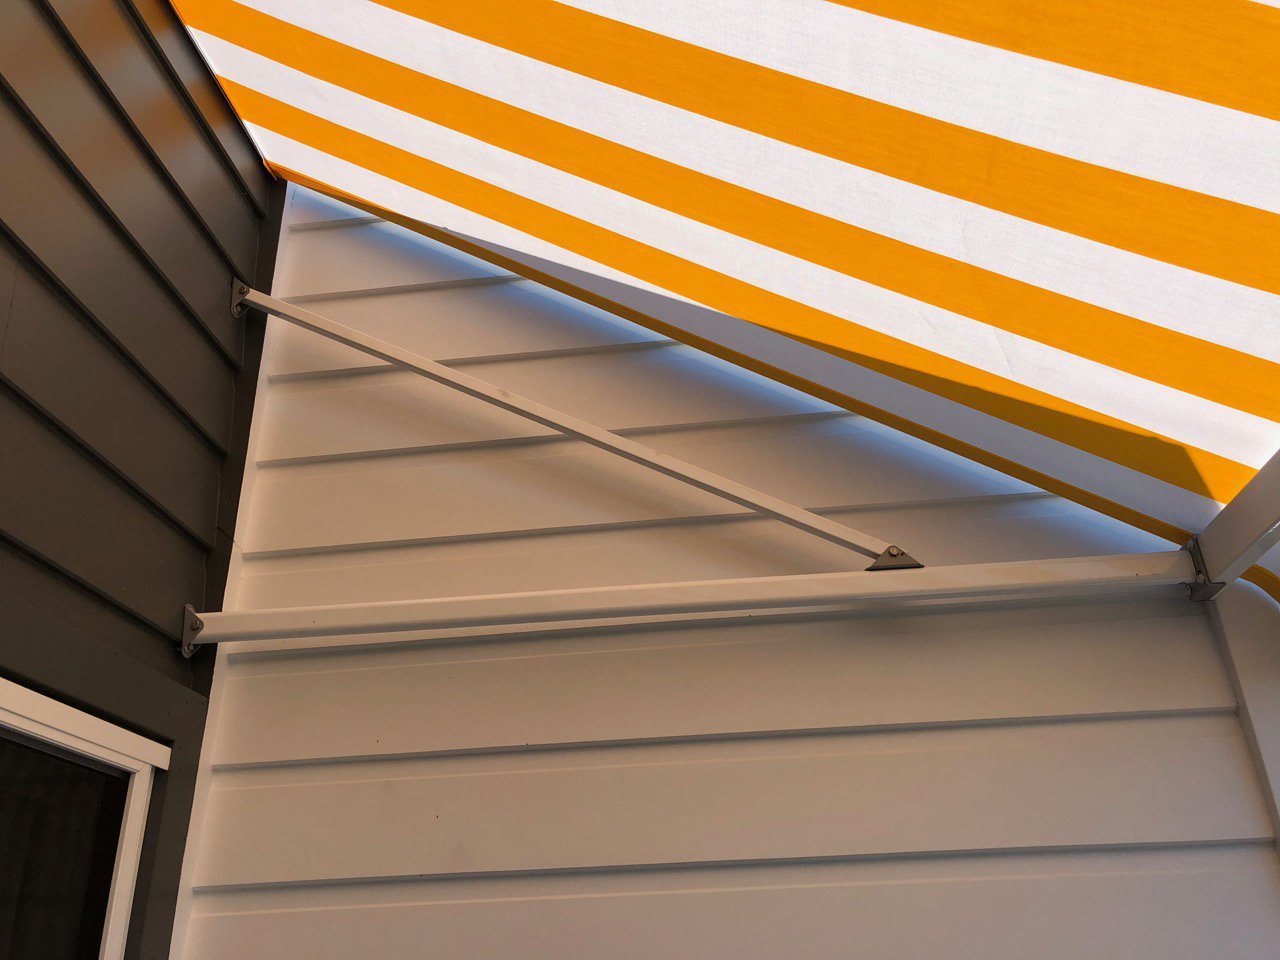 Fixed Frame Awnings Border Blinds Shutters And Awnings